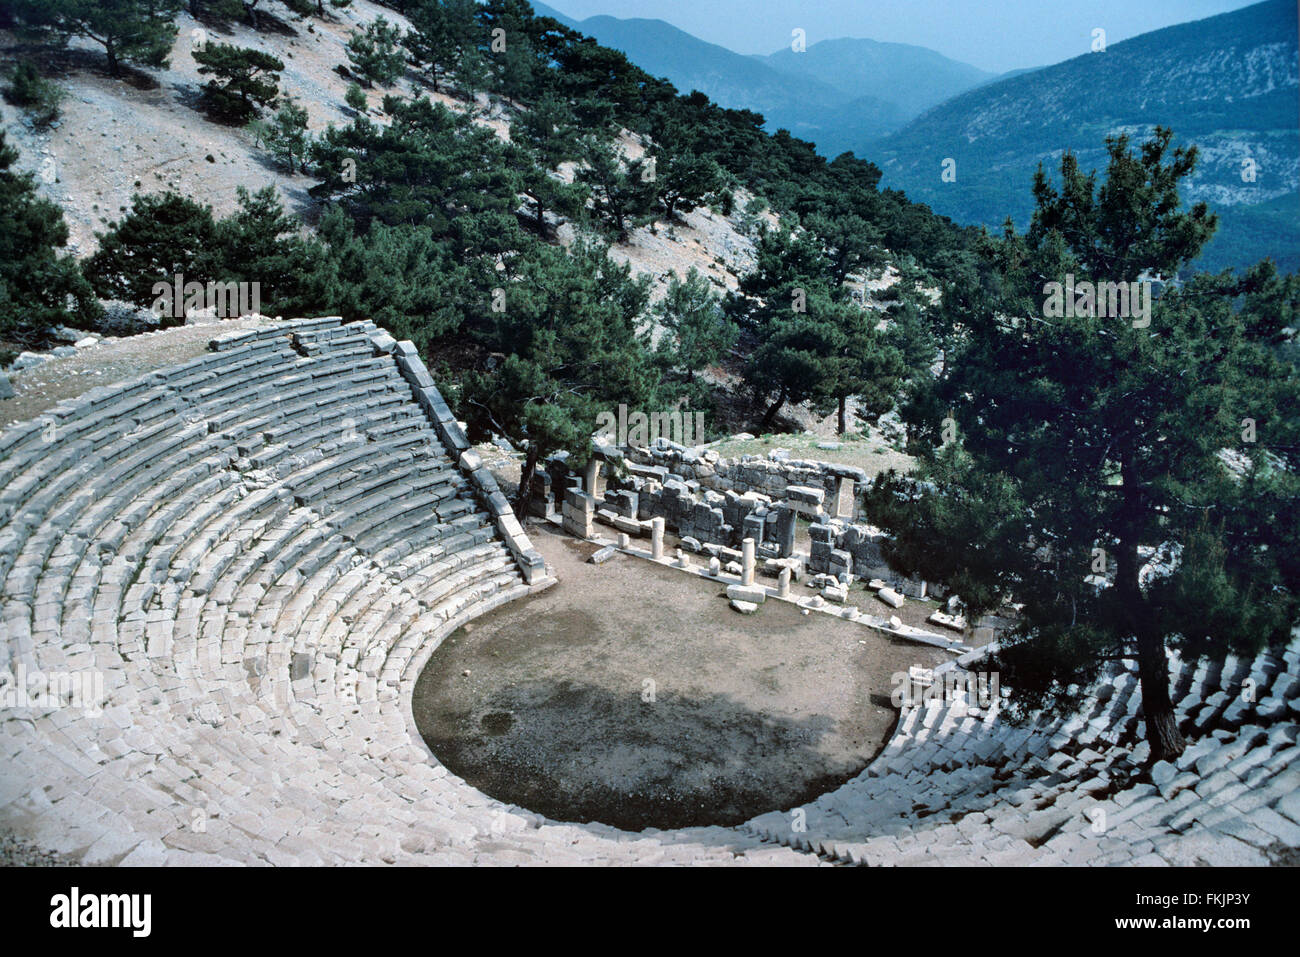 Antique Greek Theater (c1st BC) at the Ancient Lycian City of Arycanda or arykanda, Antalya, Turkey - Stock Image